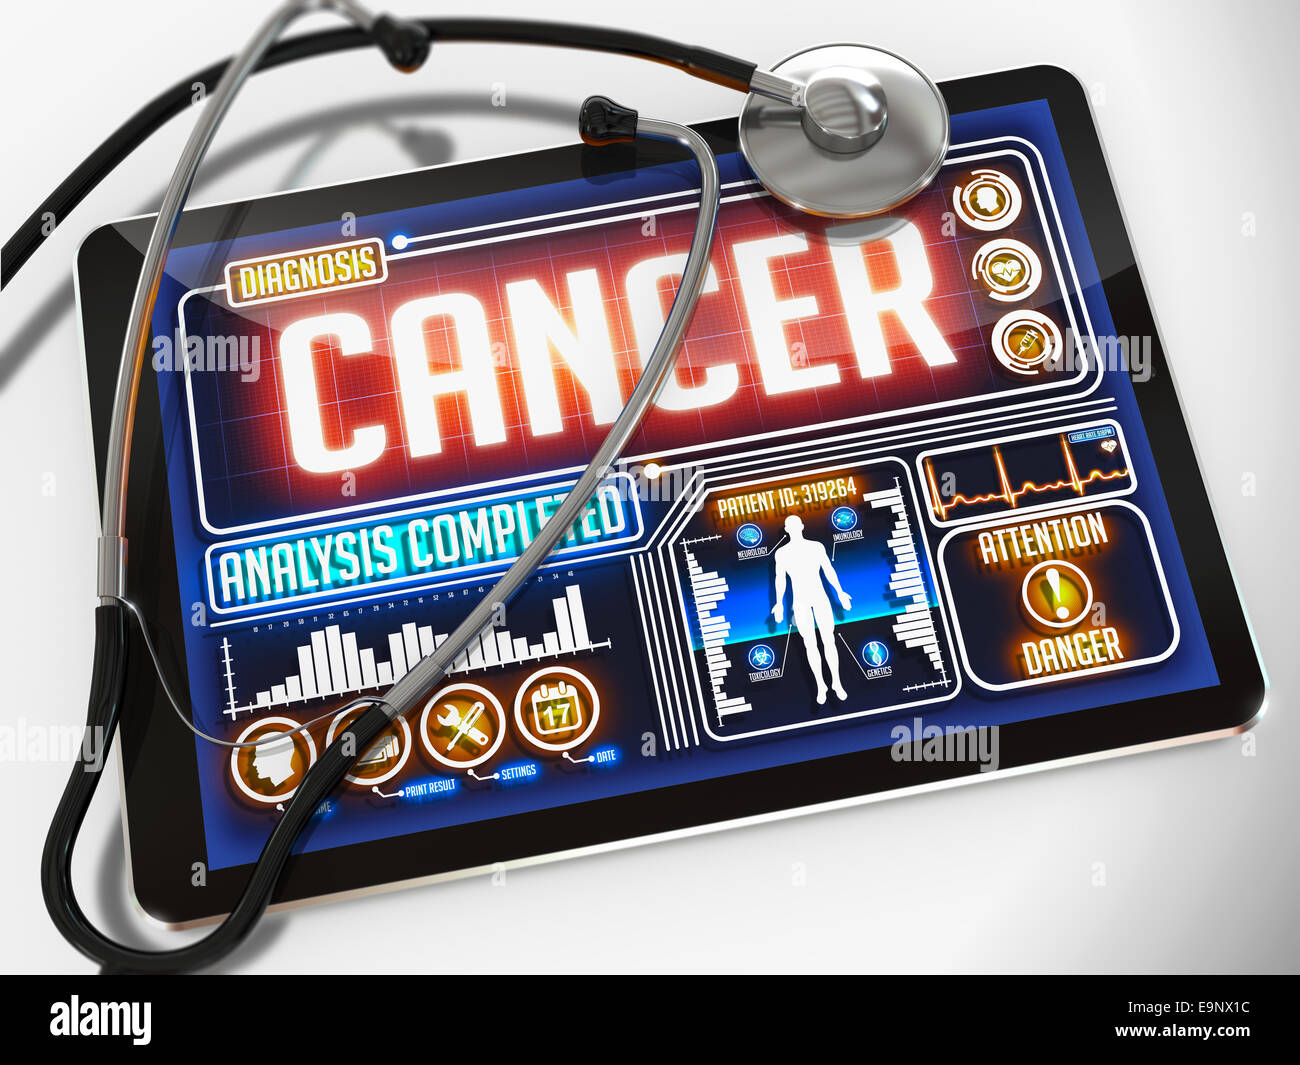 Cancer on the Display of Medical Tablet. - Stock Image